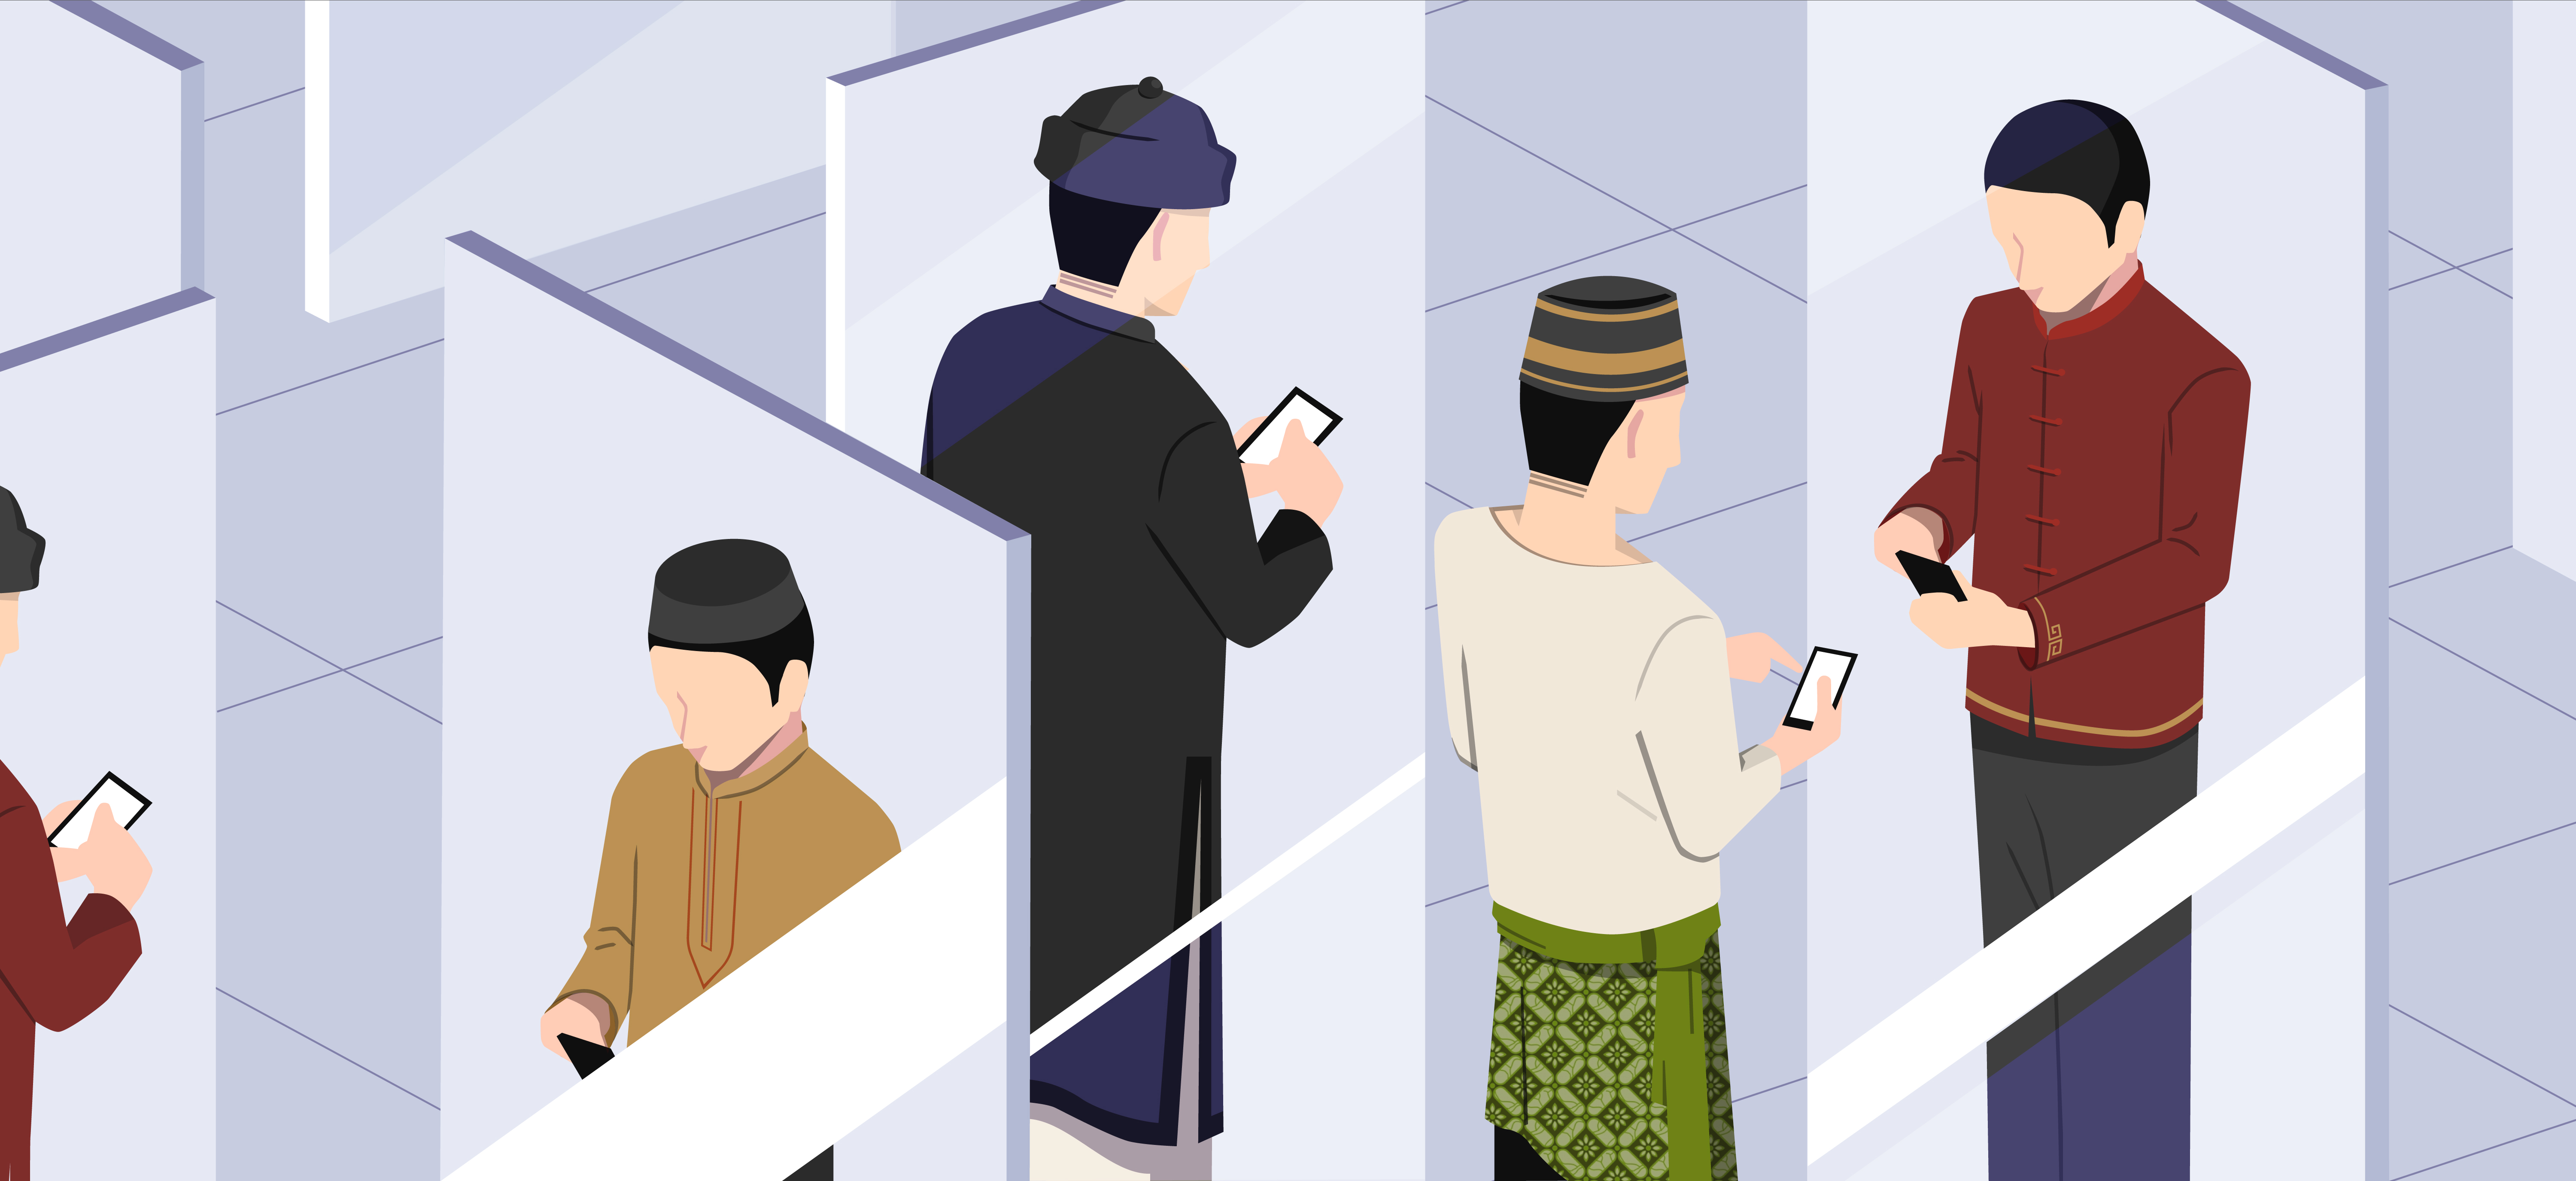 After emulating Chinese business models, Indonesian startups seek success abroad